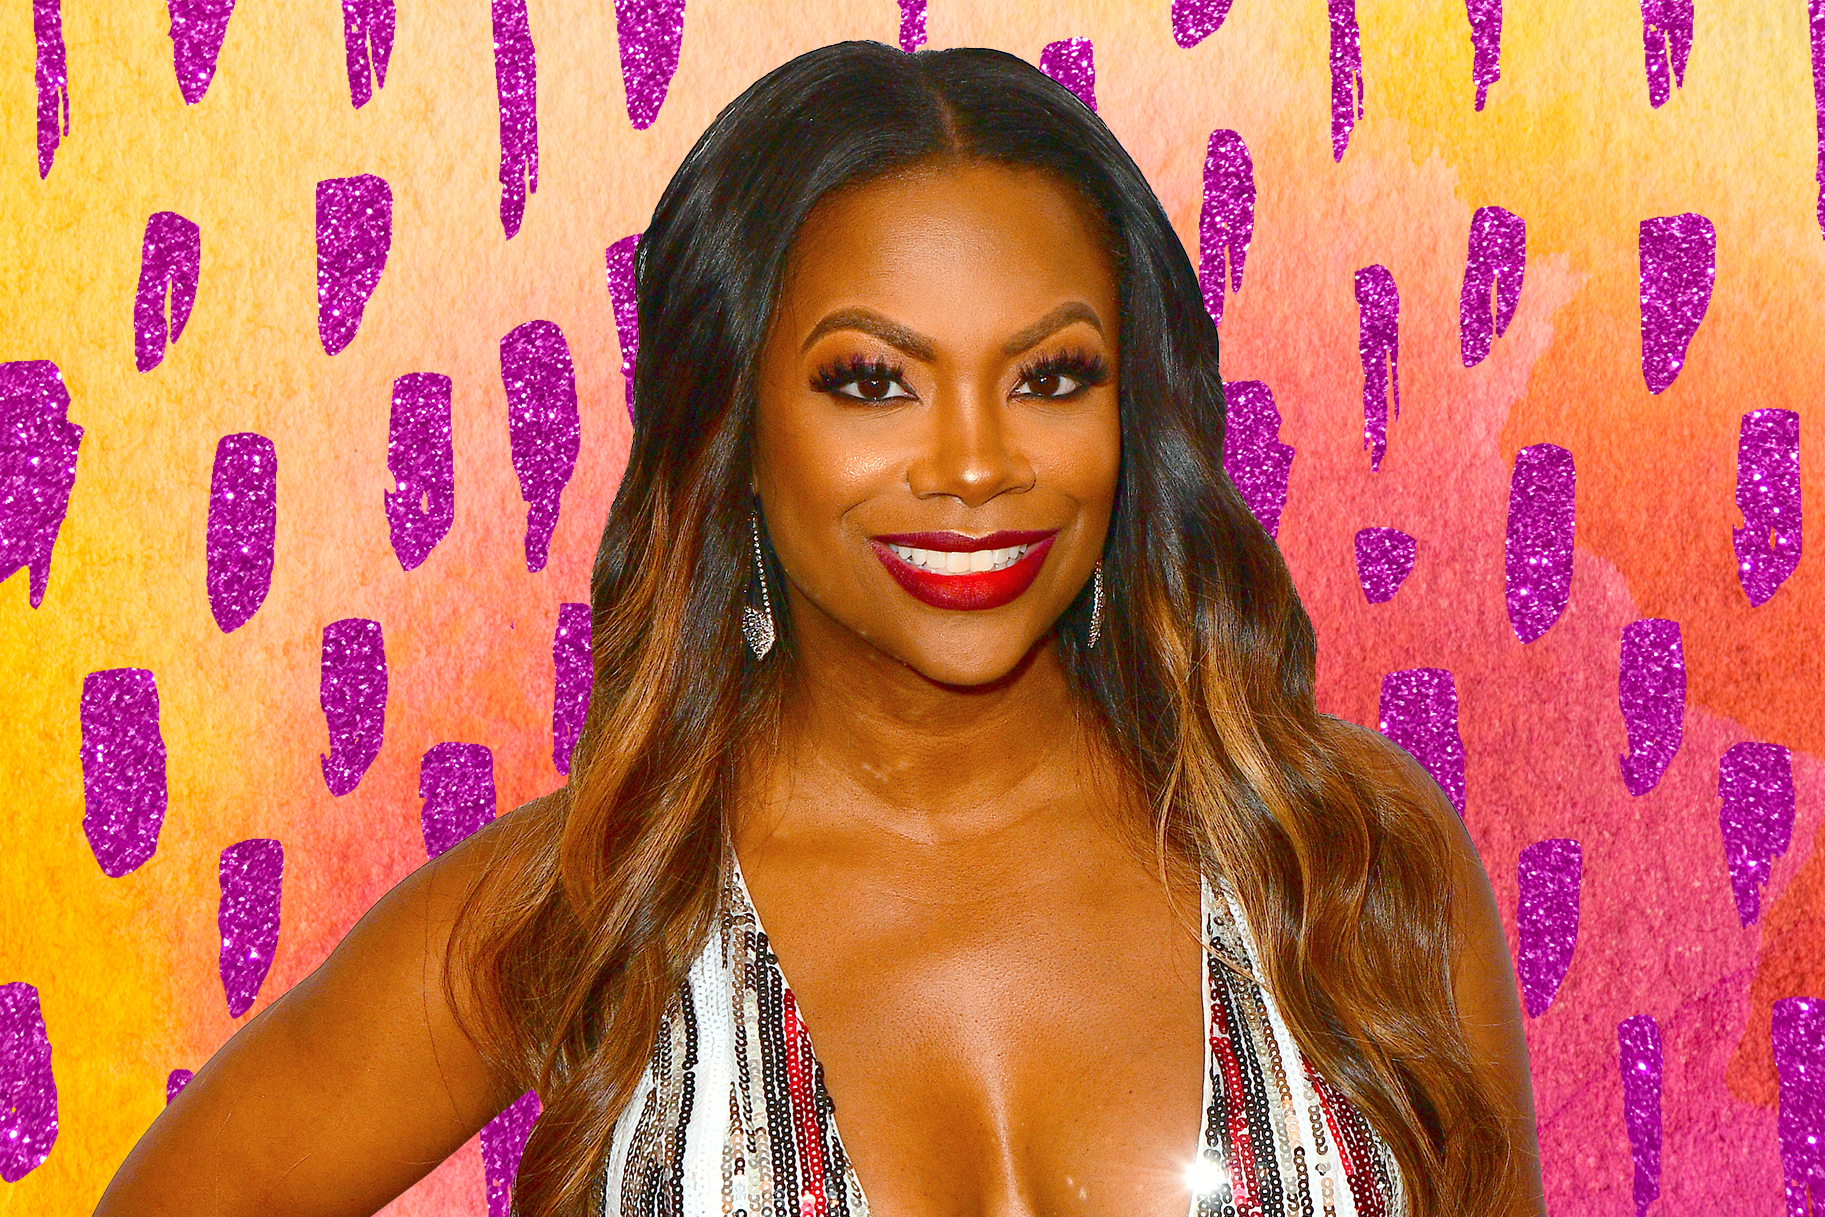 Kandi Burruss' Fans Wants Her Permanently On 'The Chi' Series